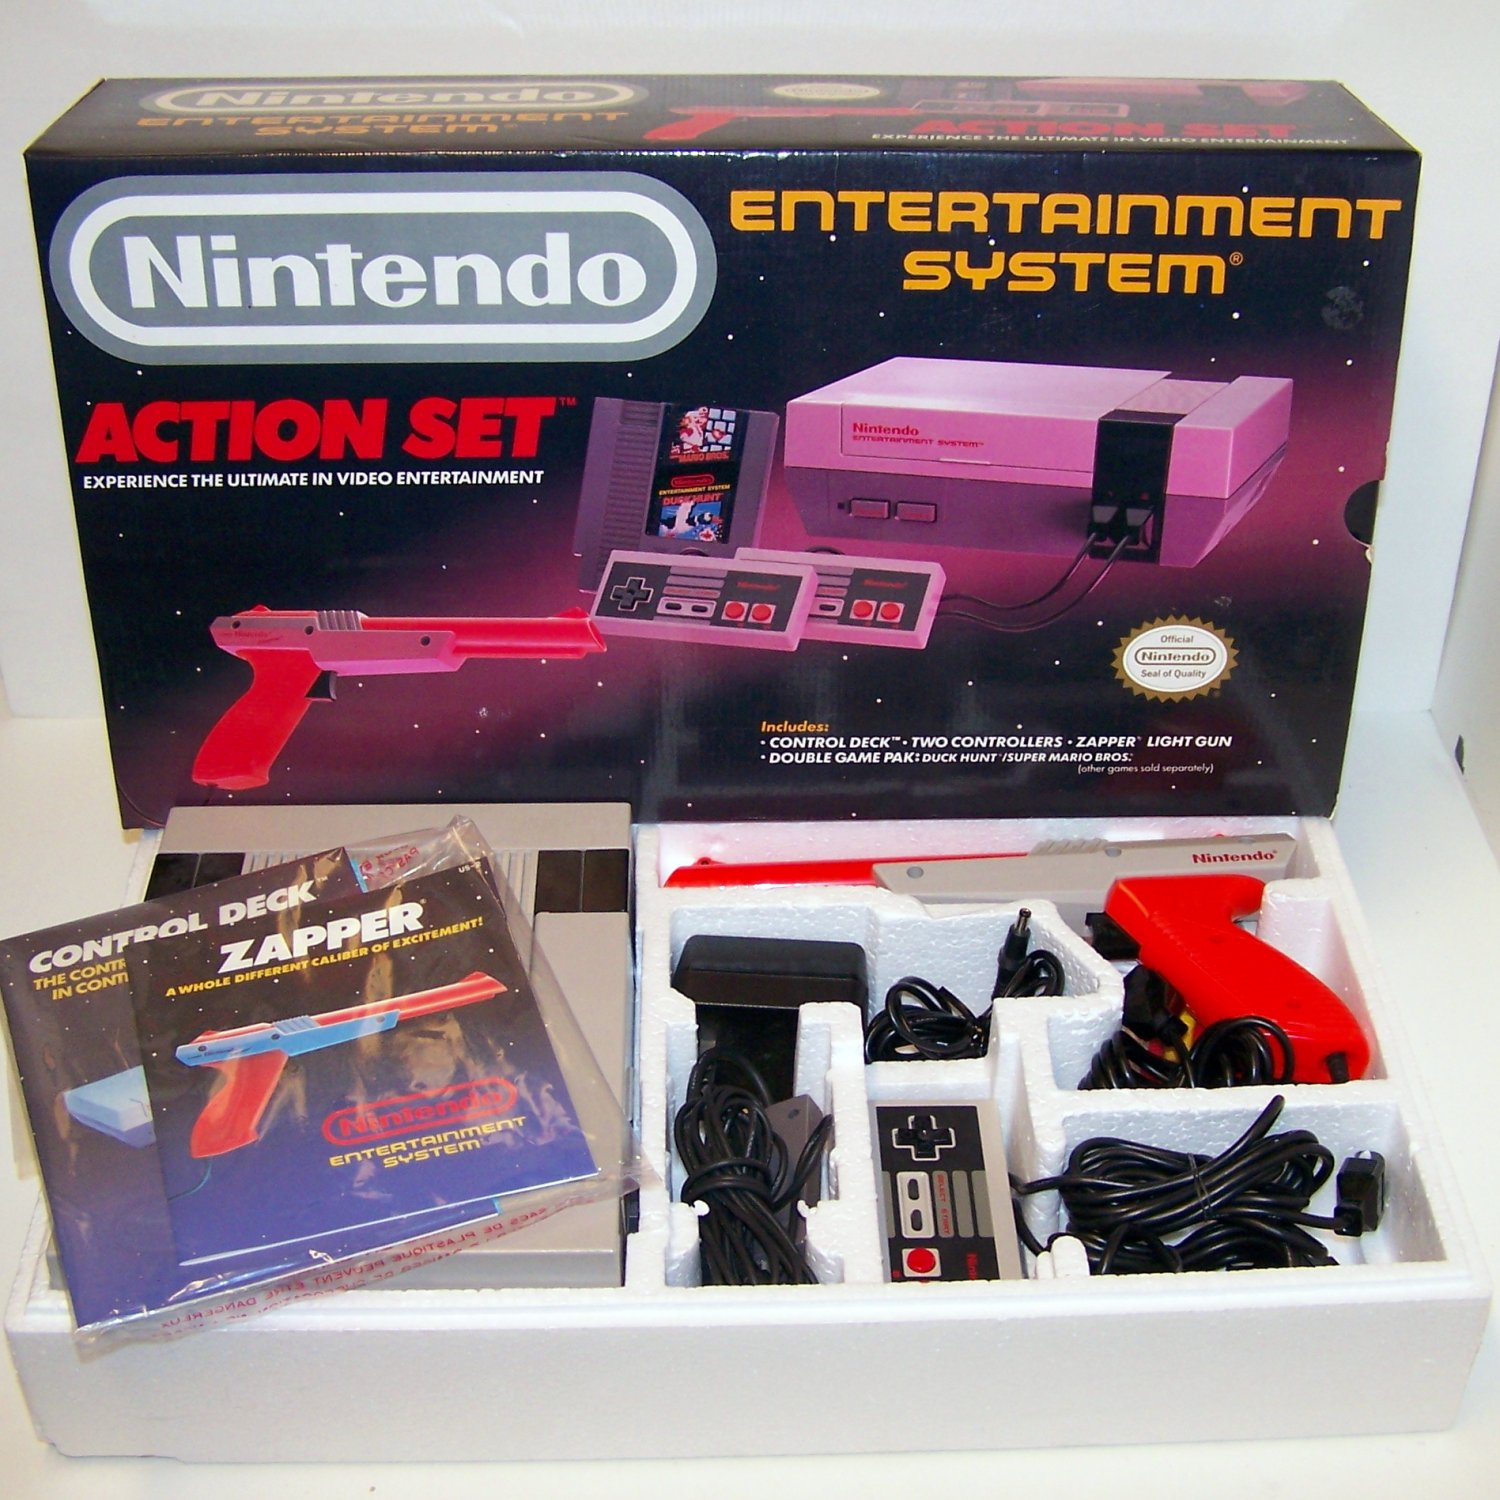 Original Nintendo NES entertainment system Complete Action Set in box Console plus Zapper and more